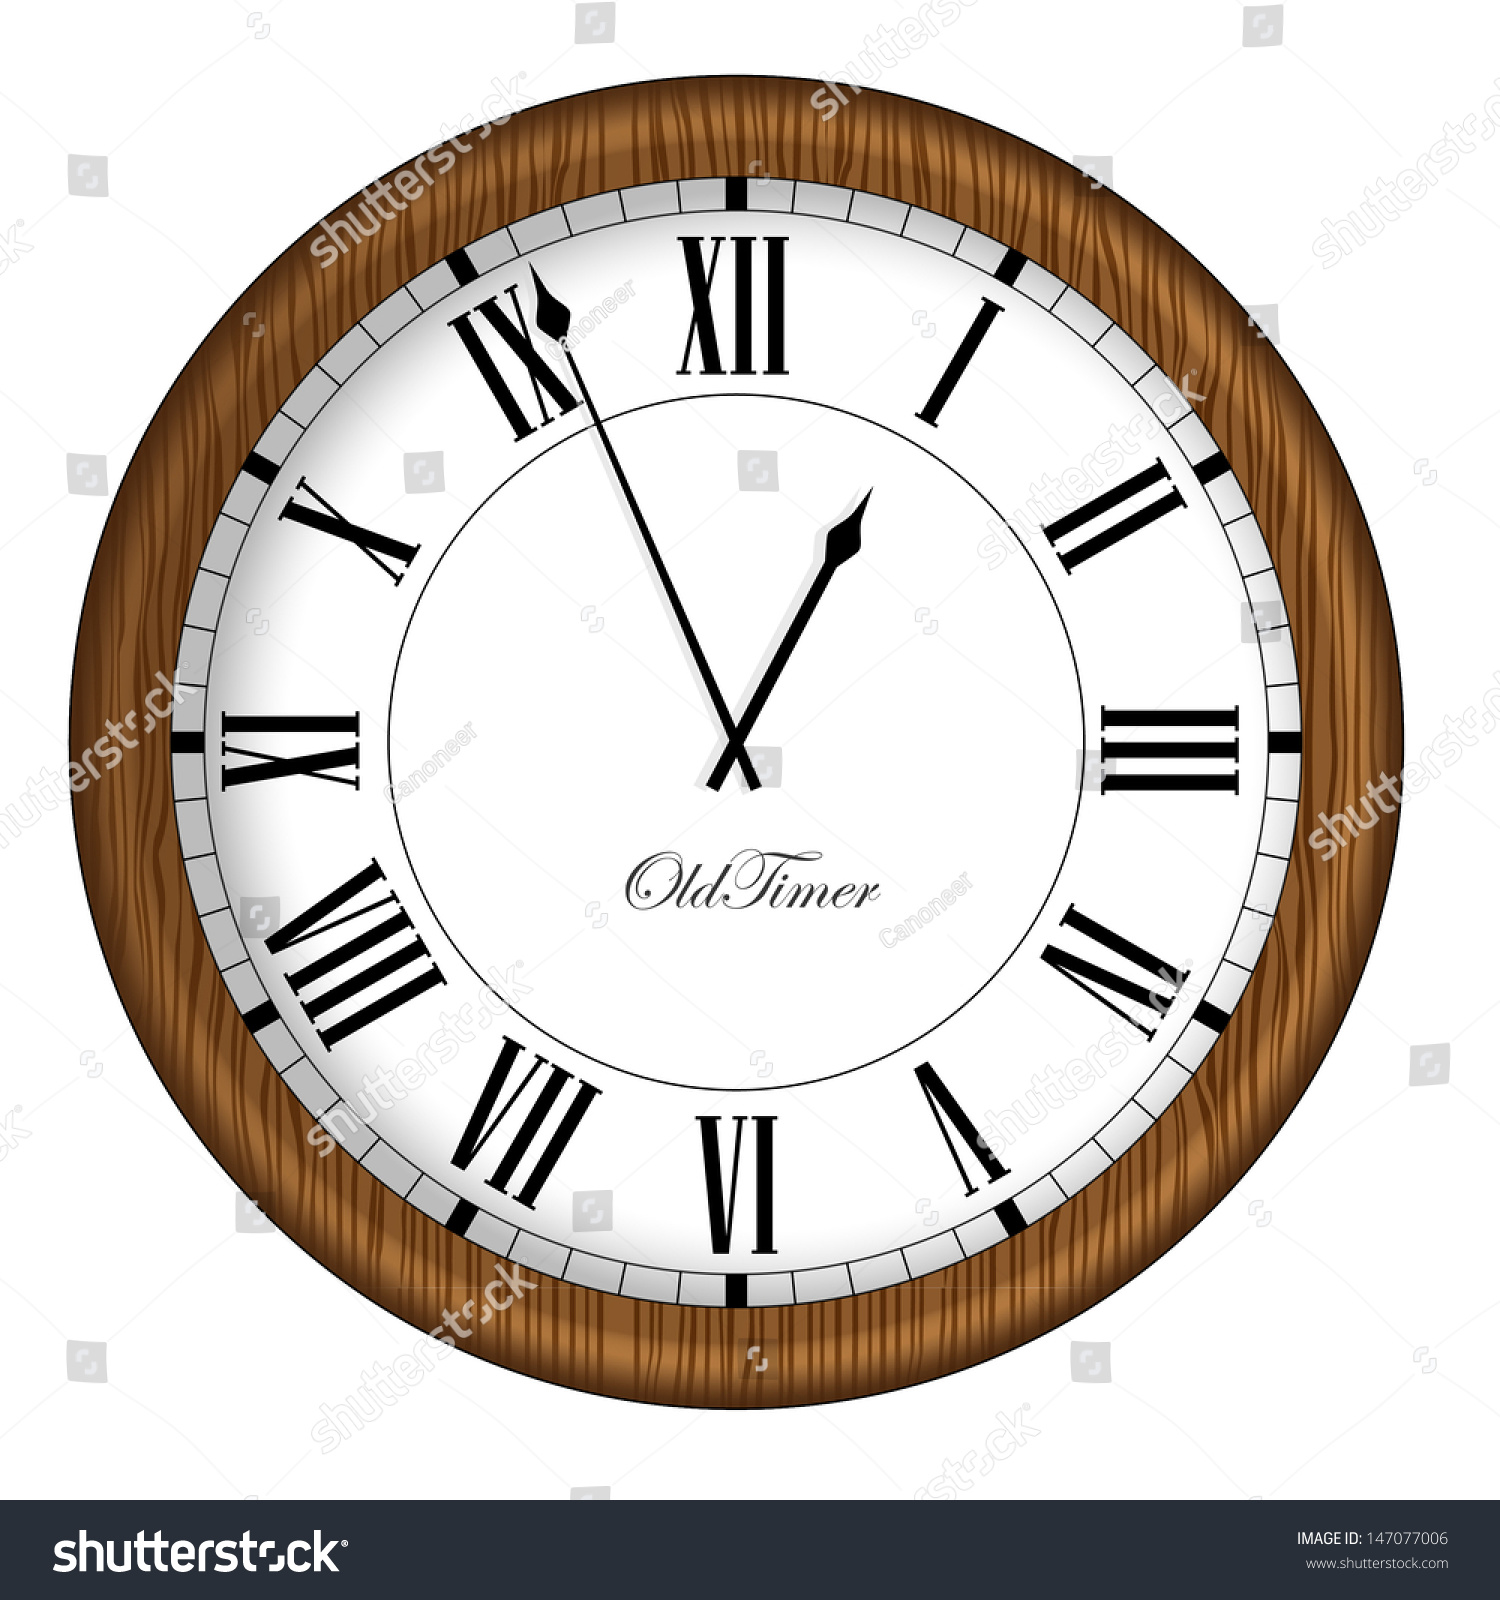 old fashioned clock retro old timer clock in wooden frame vector illustration